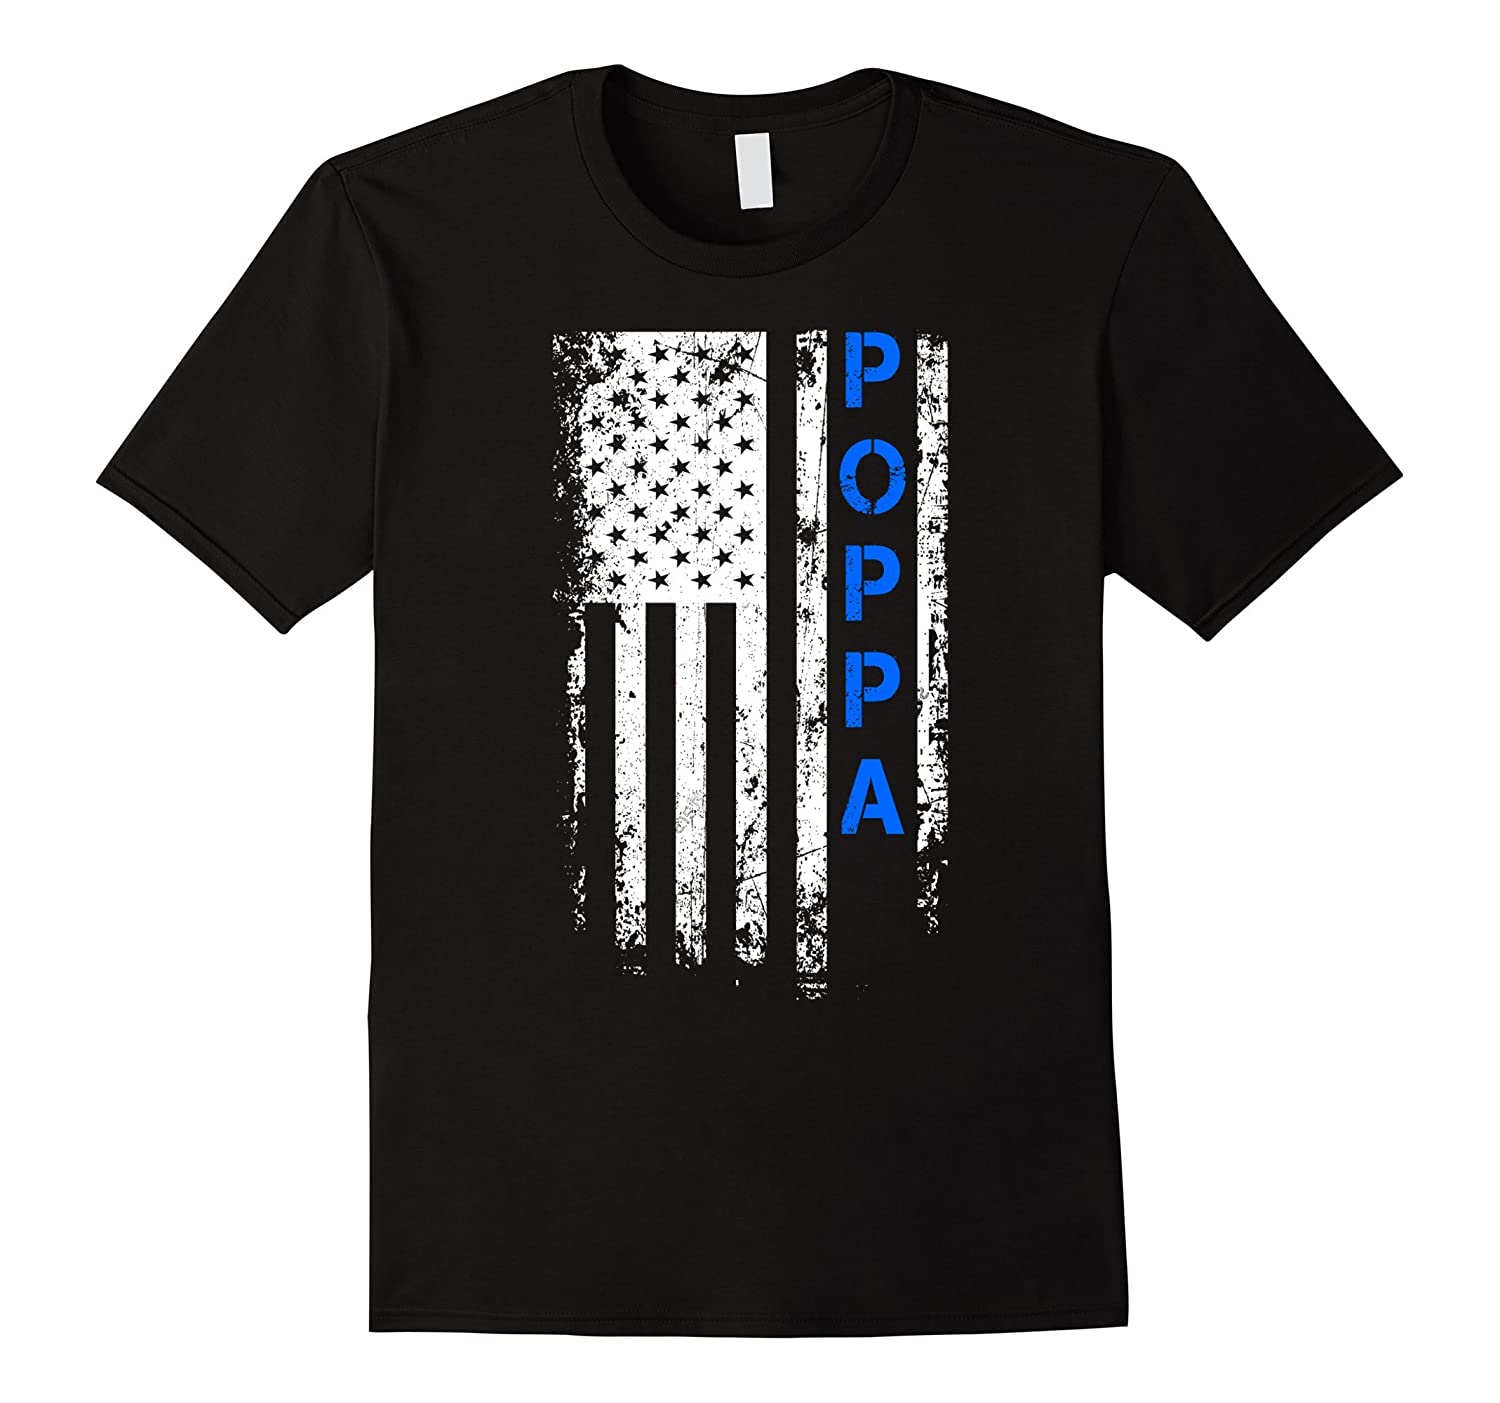 Fathers Day Gift American Blue Poppa flag t-shirt-TH